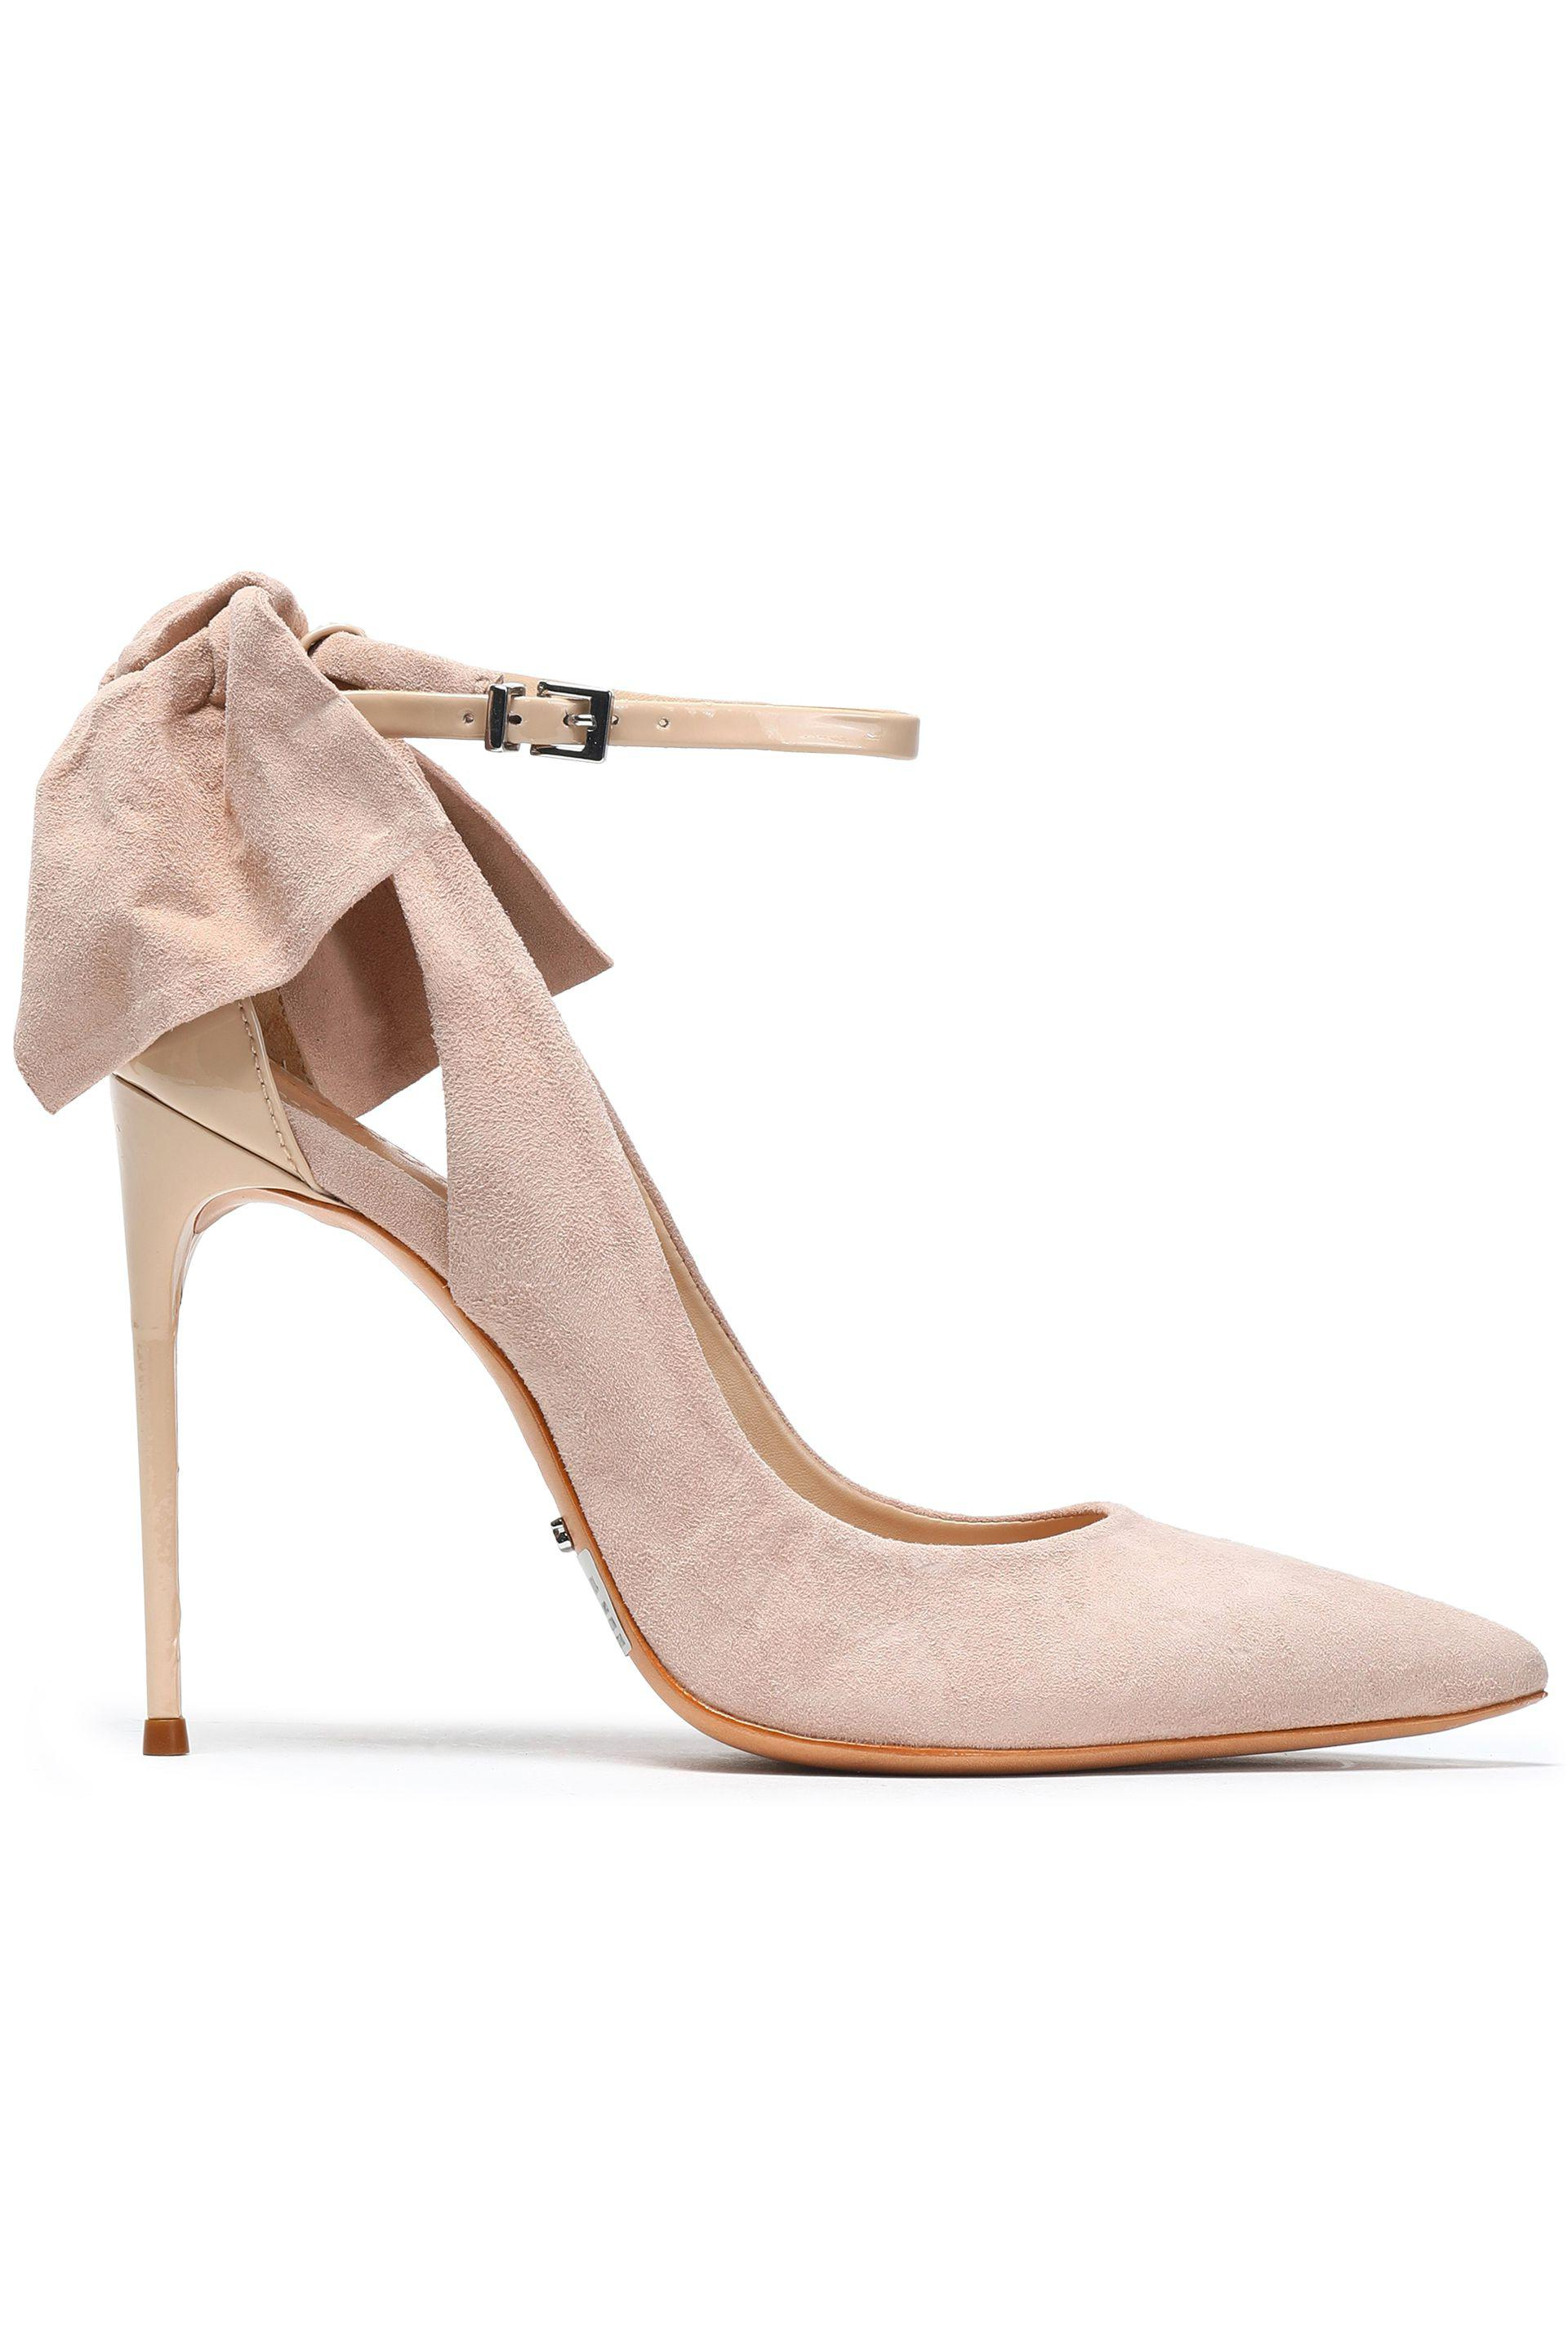 11b28e4ea98 Lyst - Schutz Bow-embellished Leather-trimmed Suede Pumps